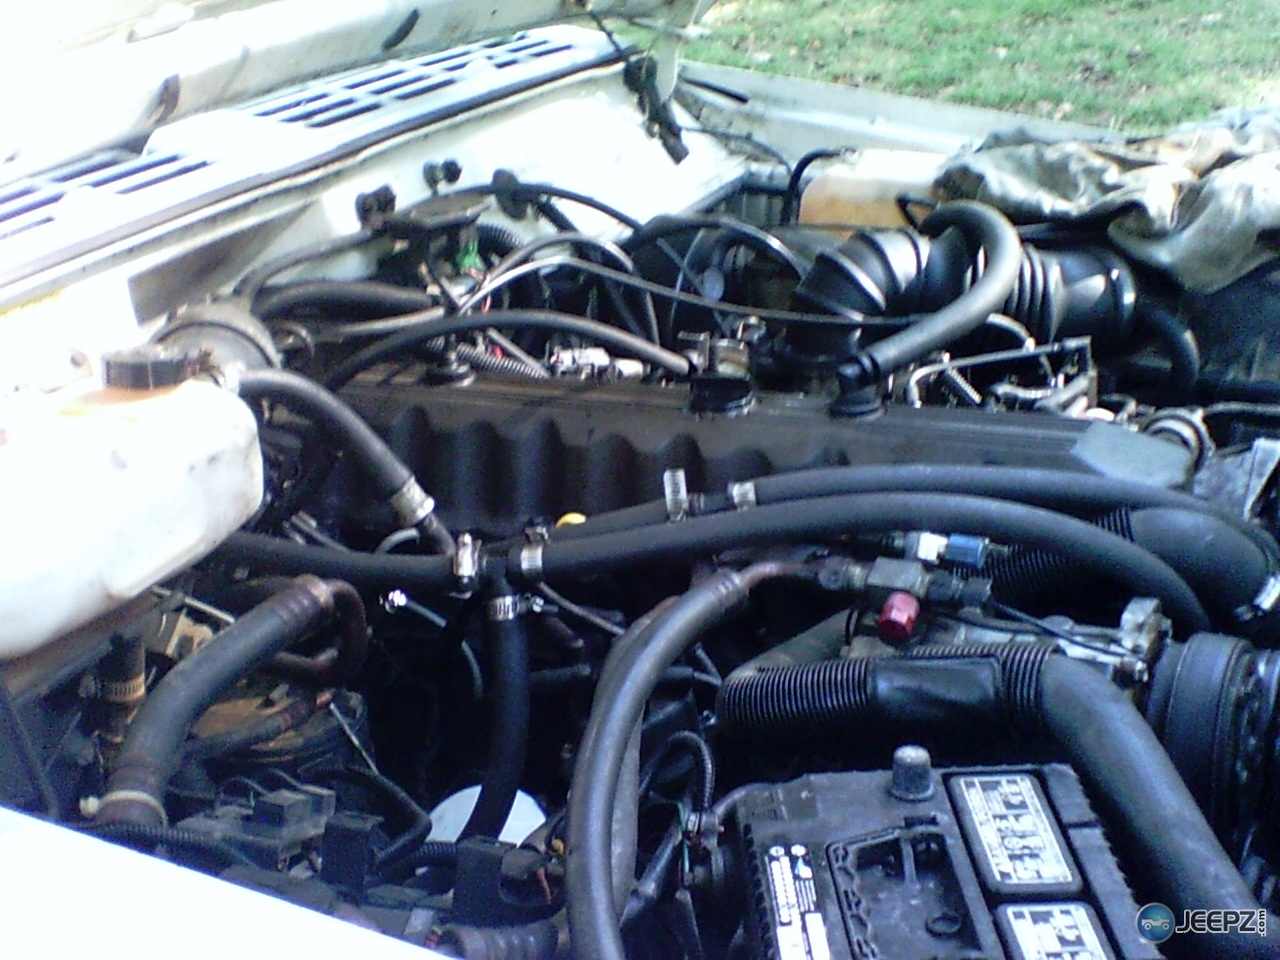 hight resolution of 1990 cherokee radiator without a cap question 1990jeep 002 jpg